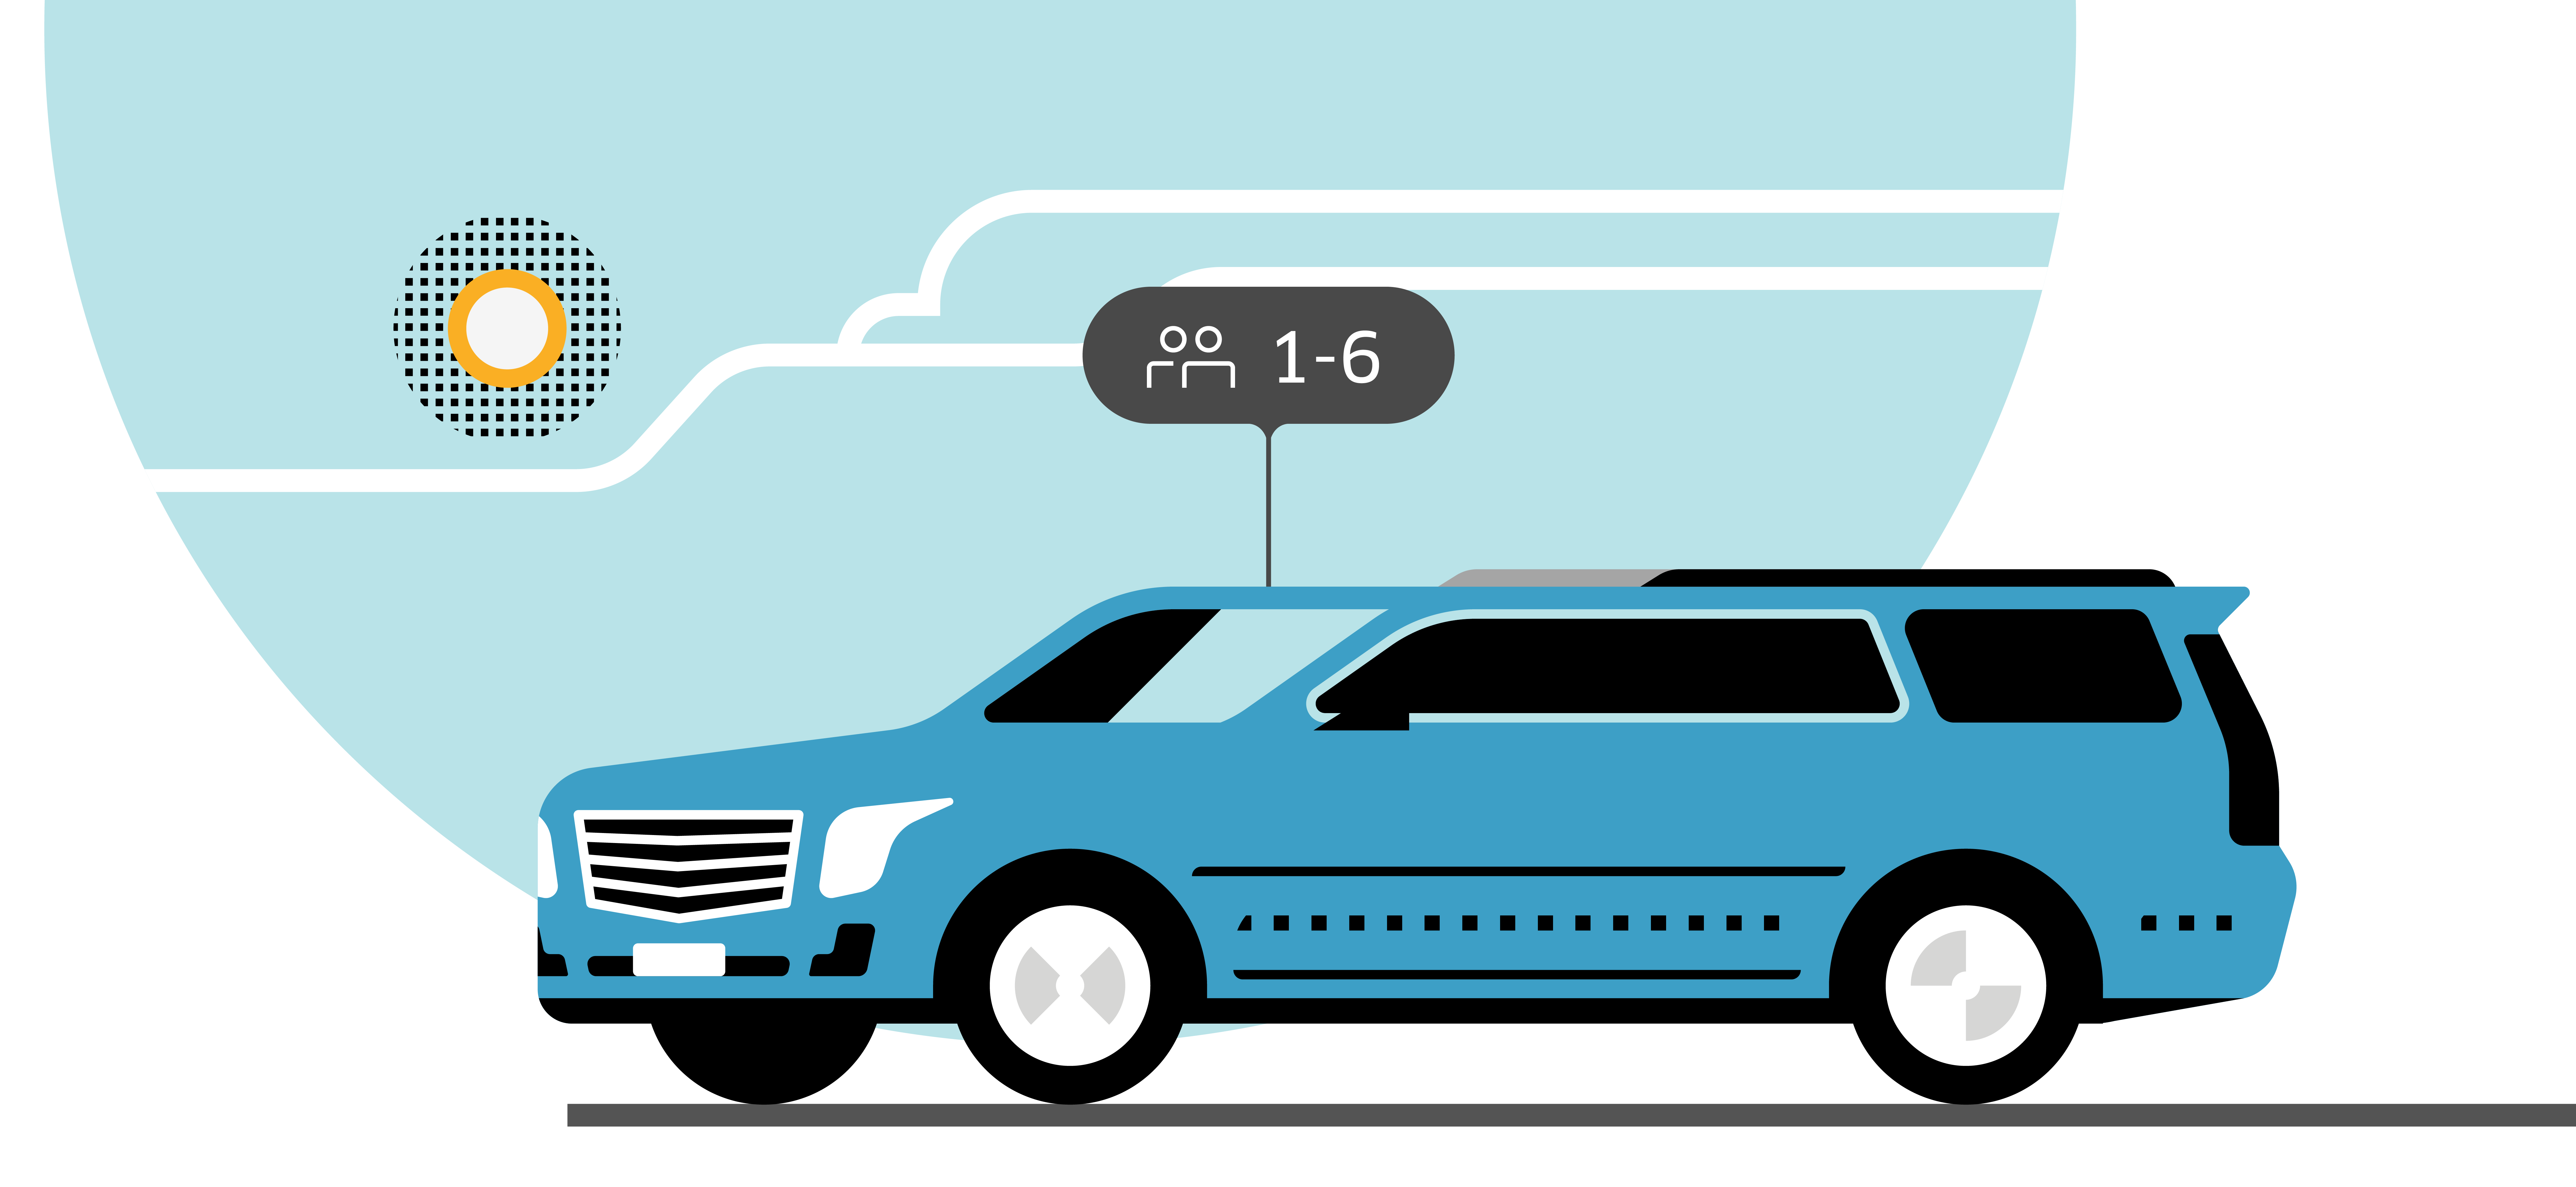 Uber XL now available in Colombo | Uber Blog